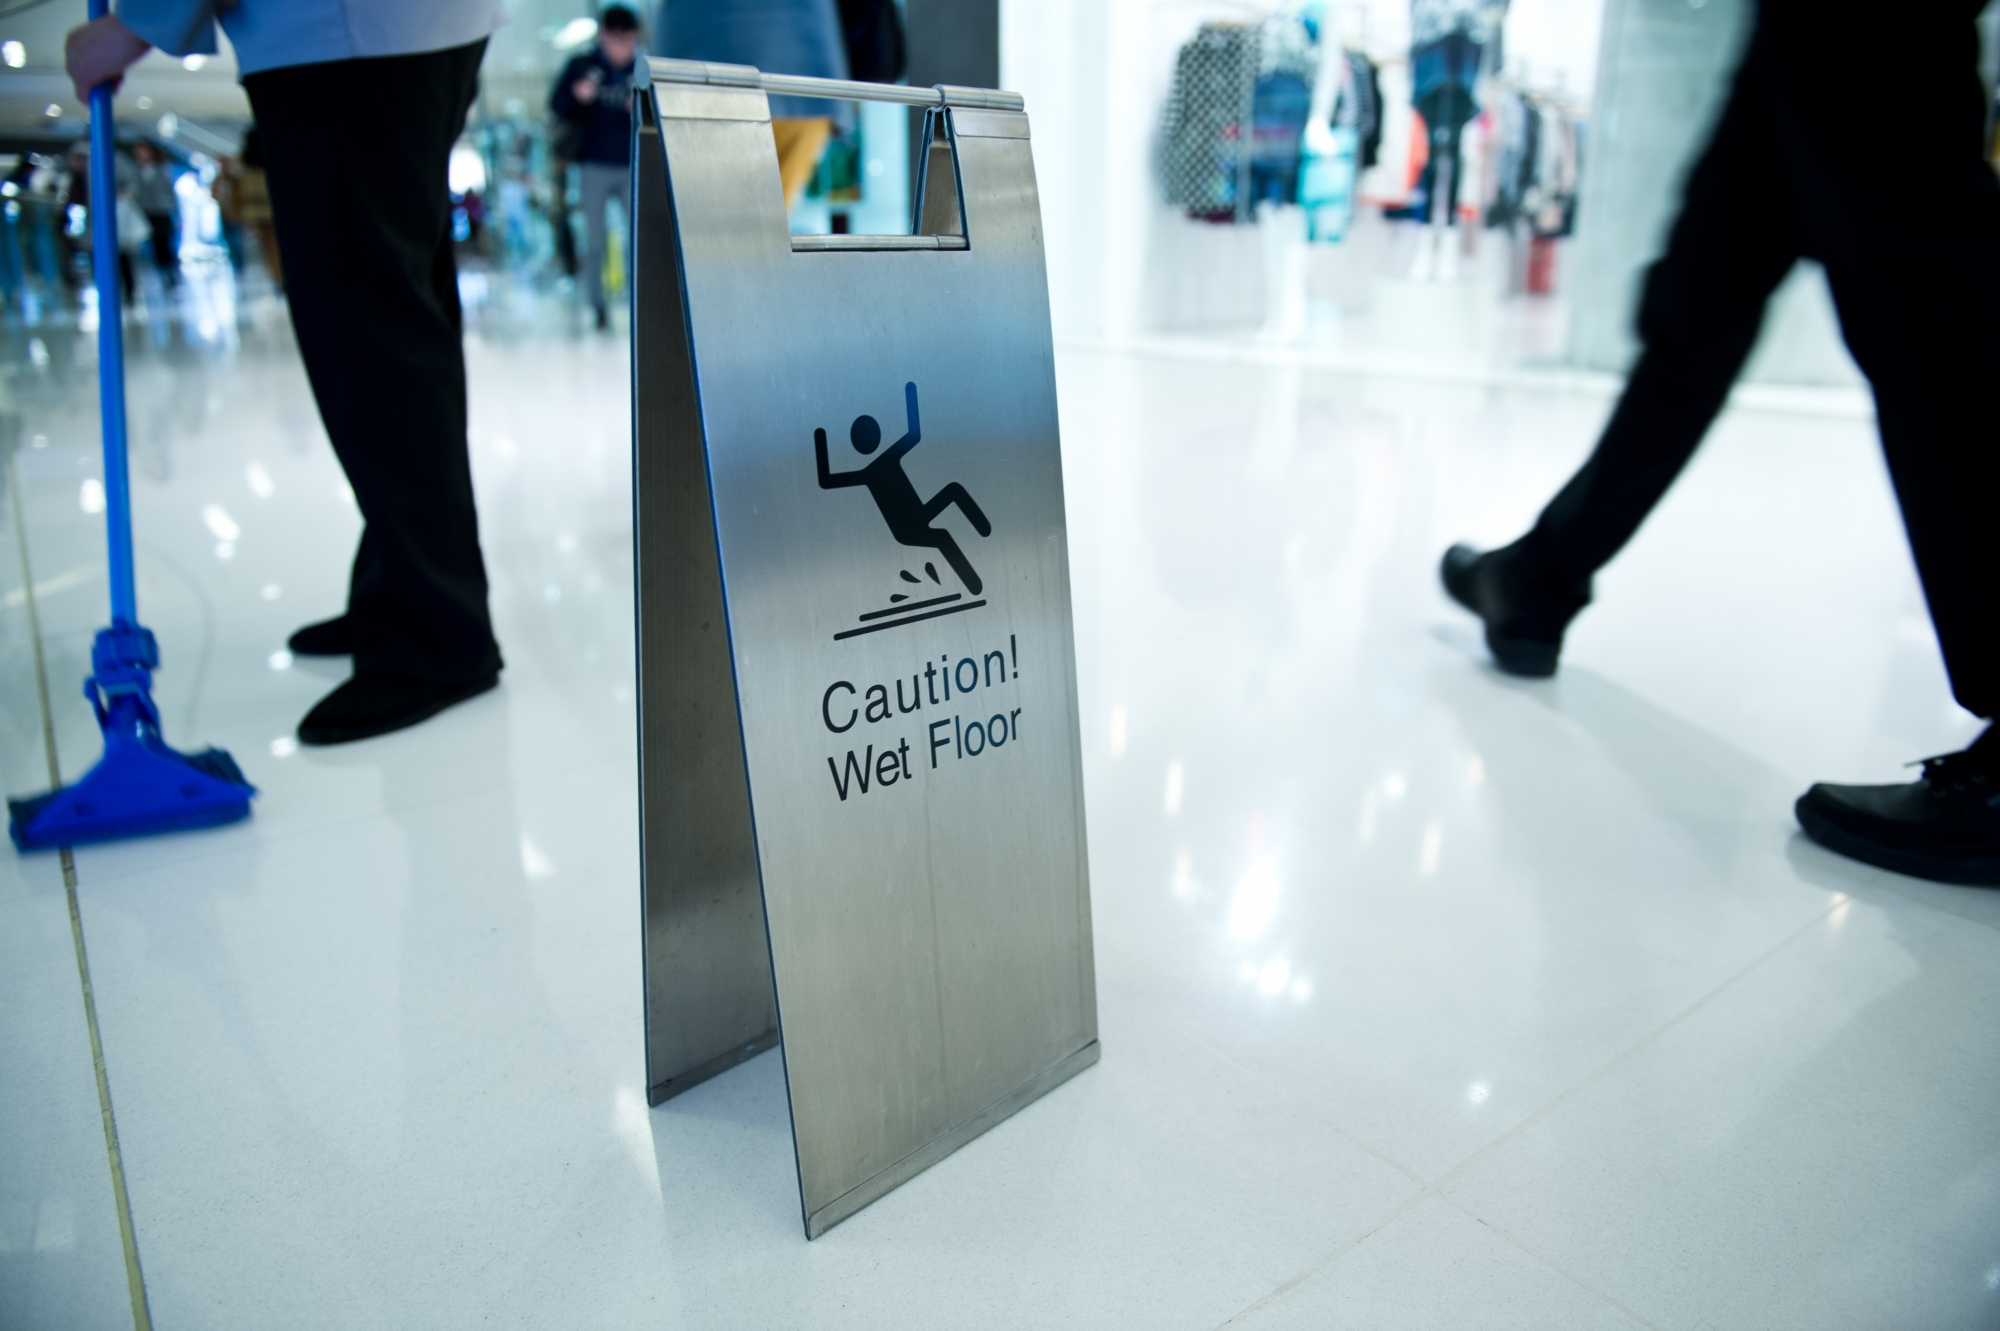 Department store wet floor slip and fall | Reid B. Wissner Personal Injury Lawyer